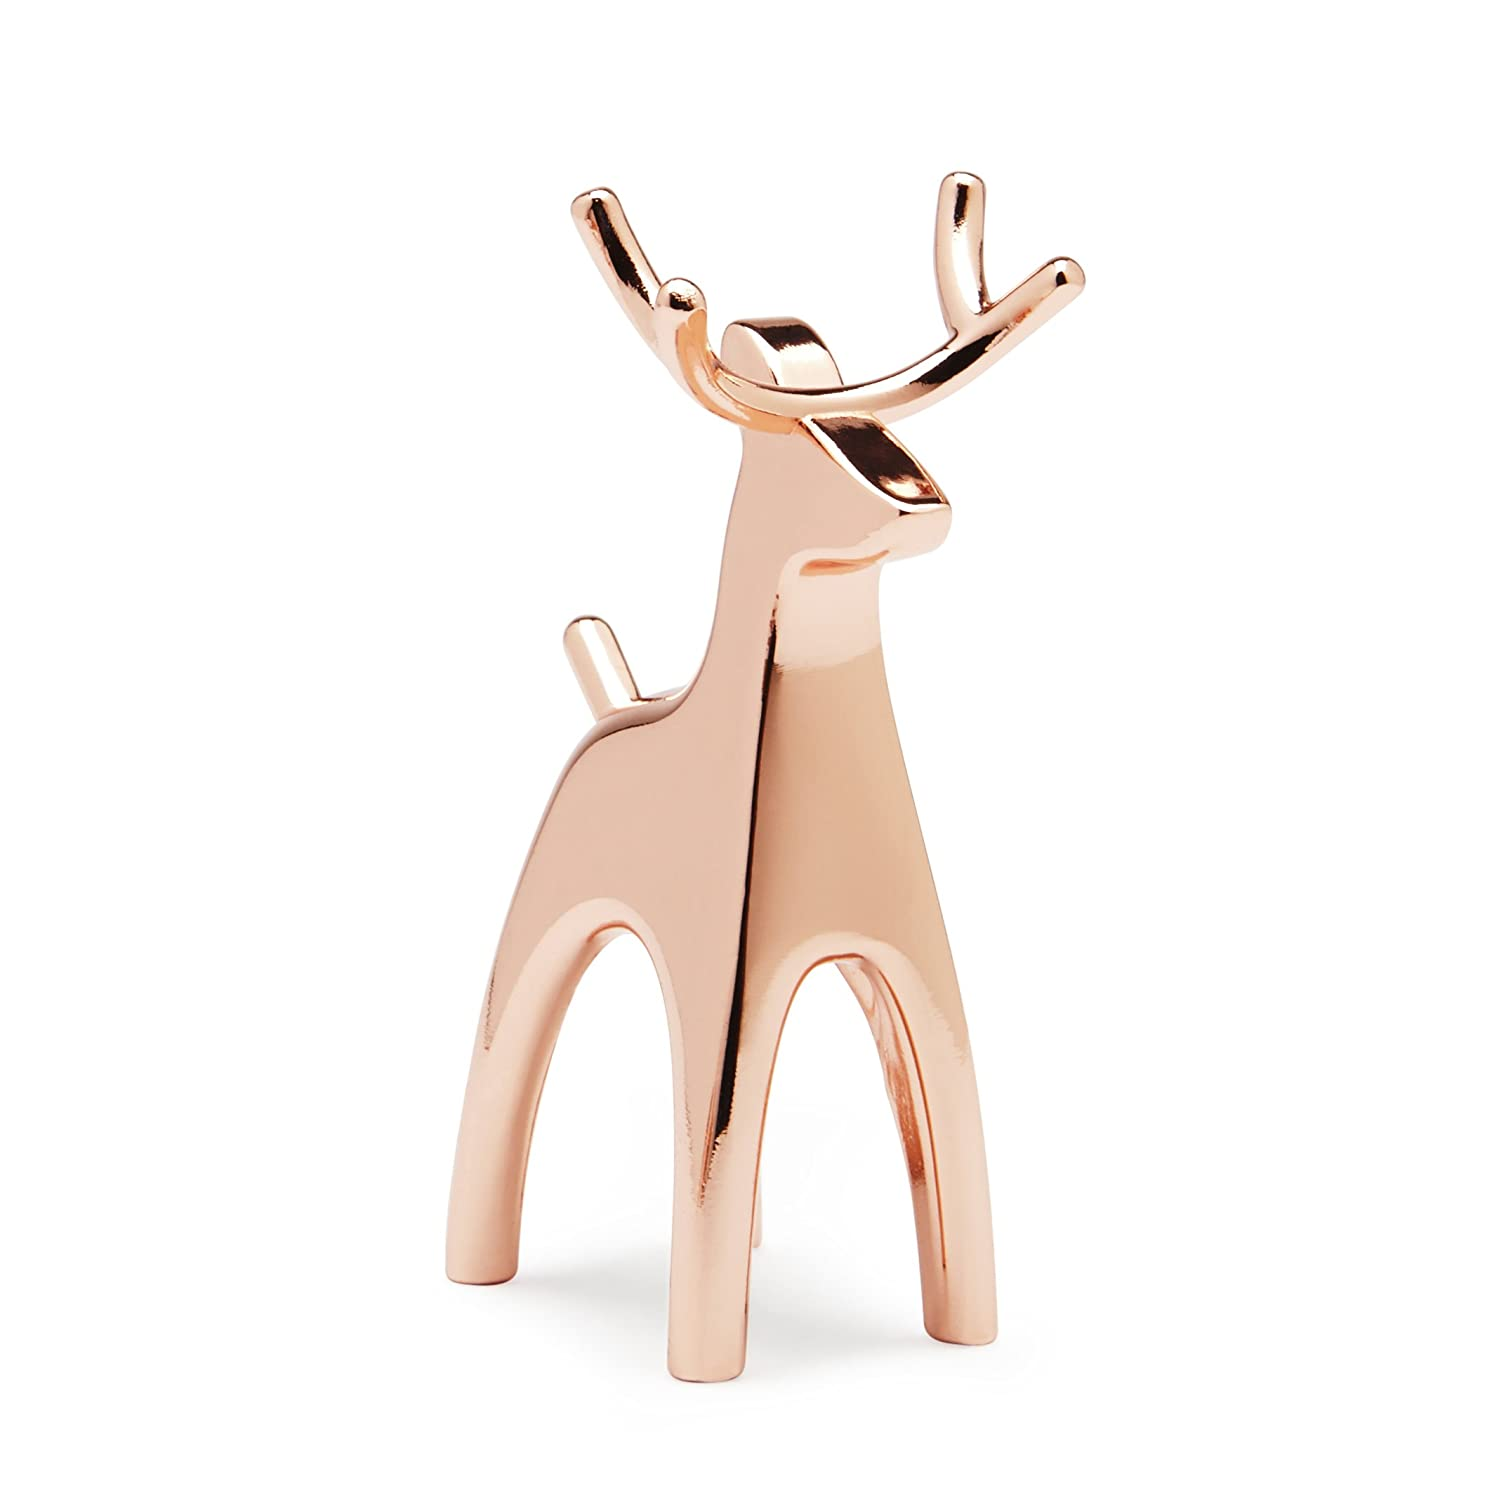 Umbra Bunny Zinc Anigram Ring Holder, Copper/White 299118-880